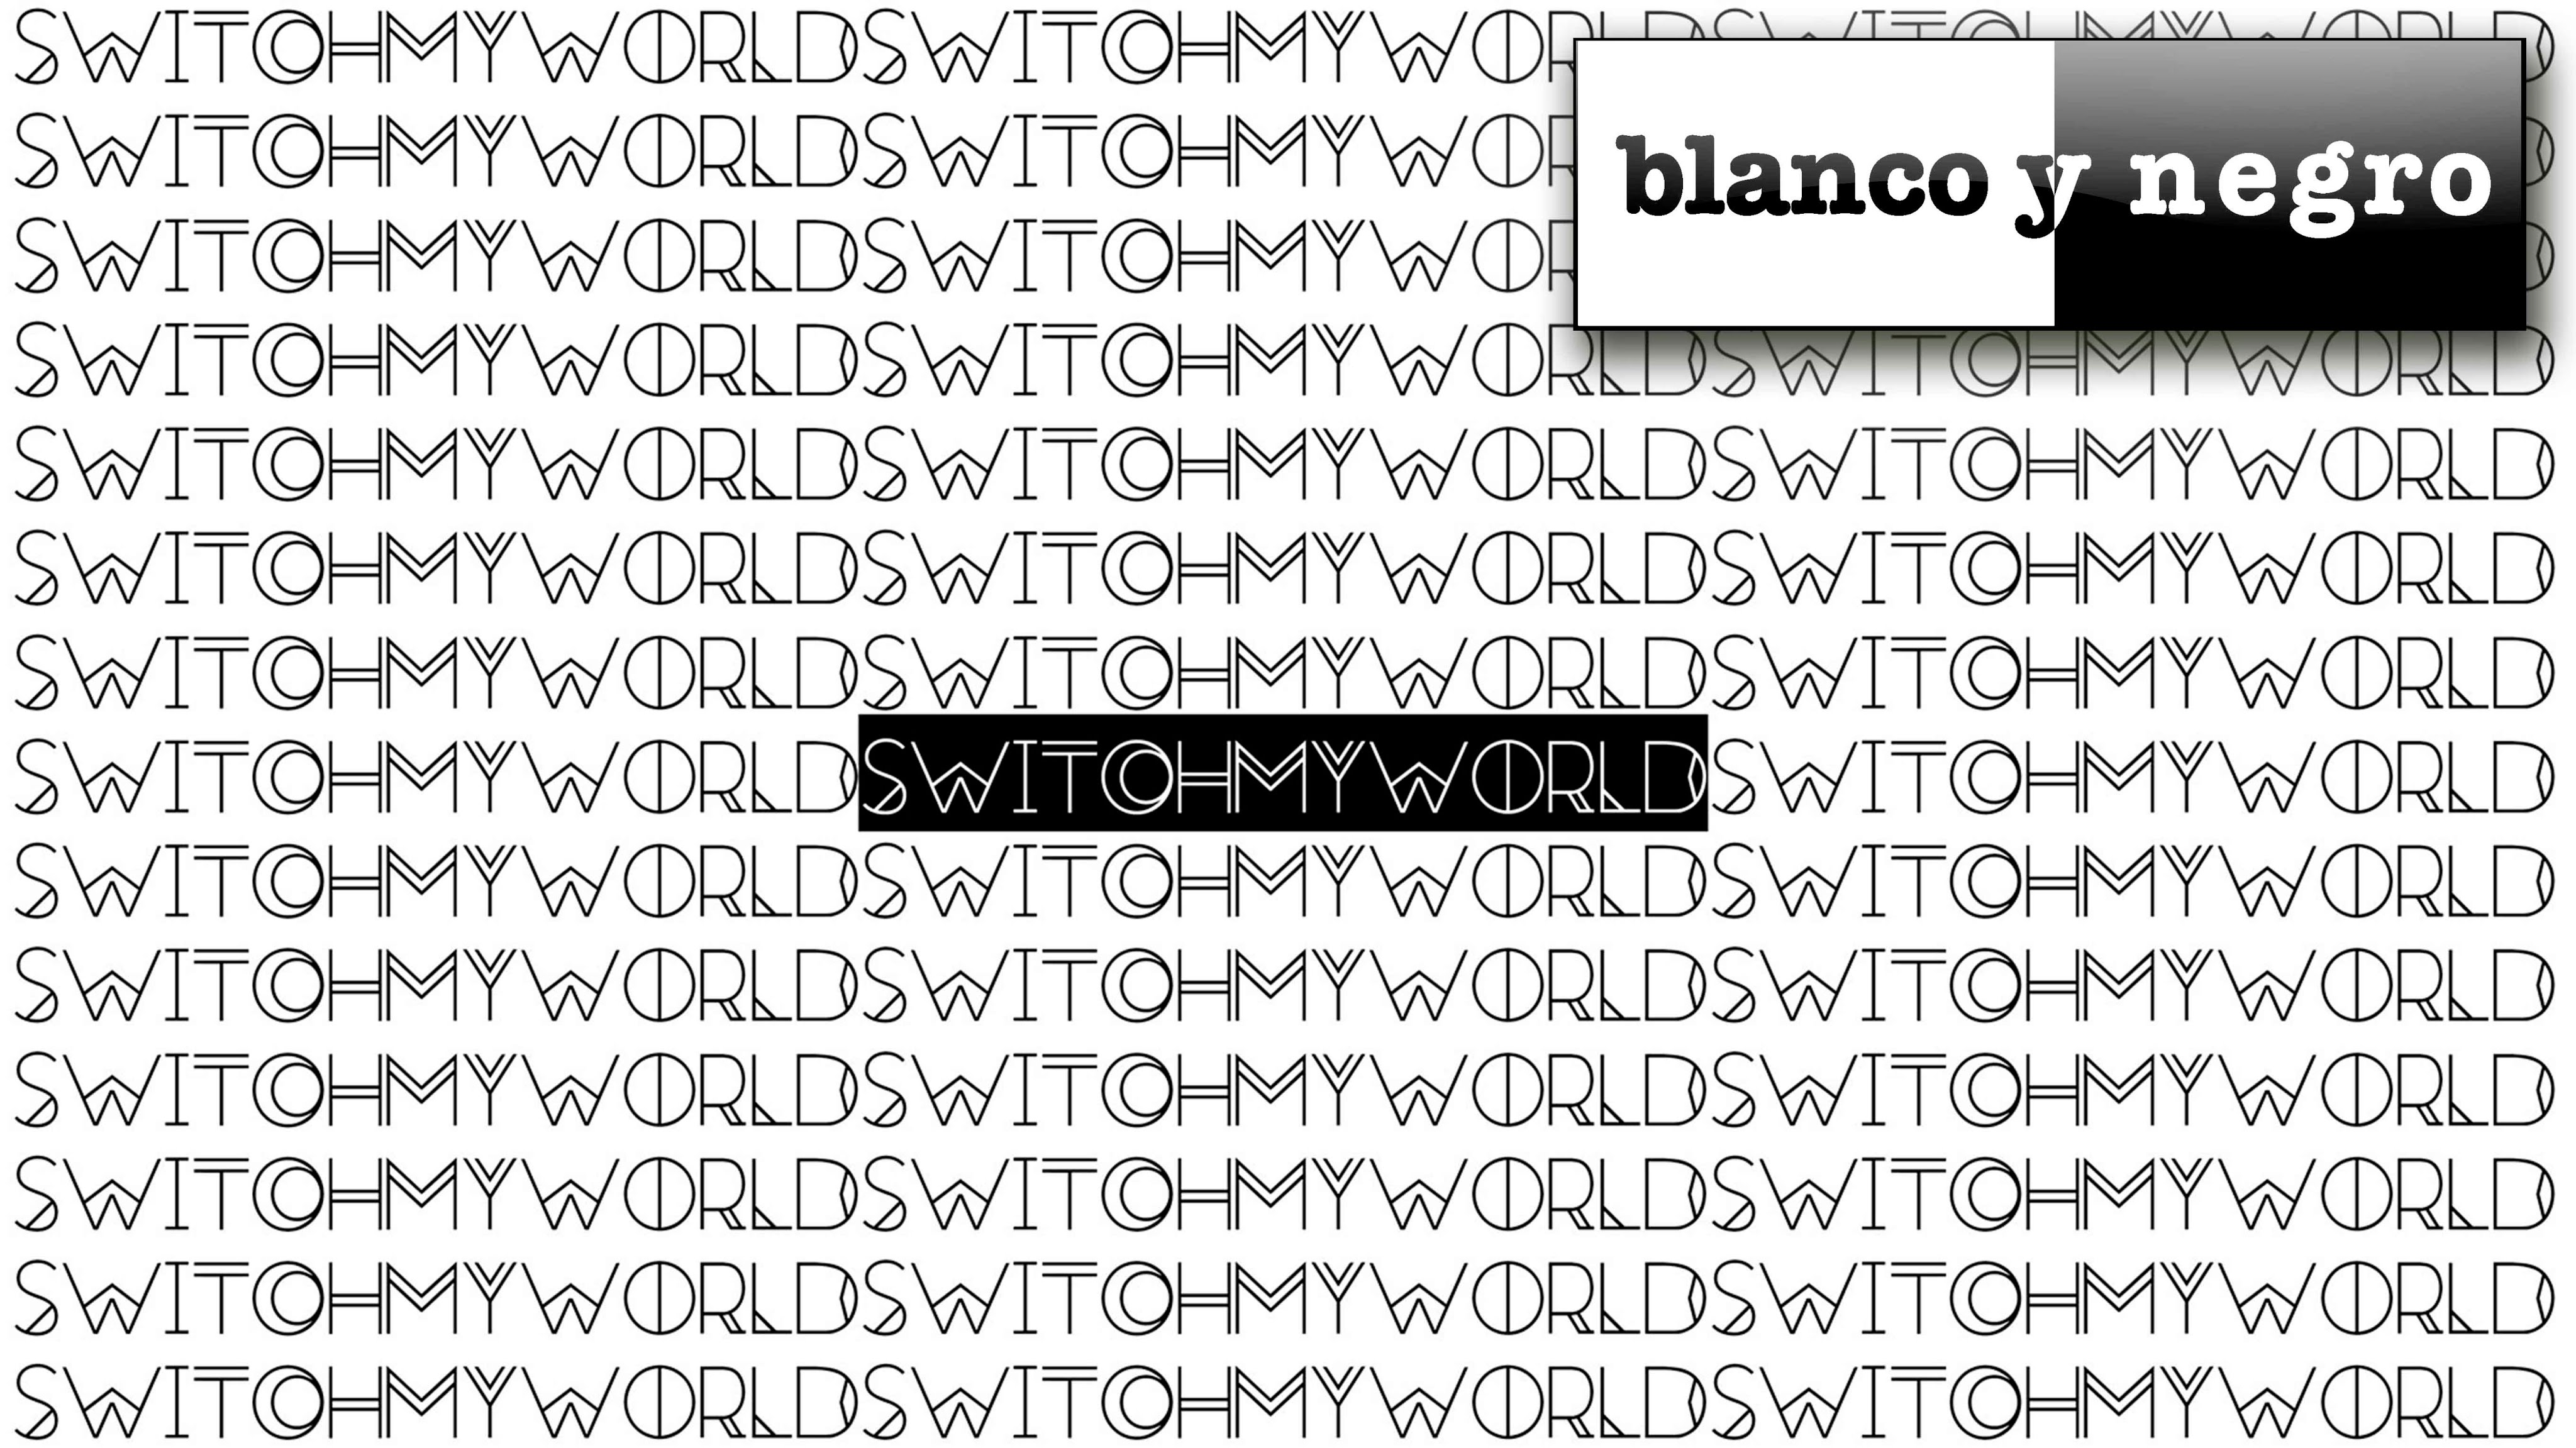 Jose M Duro & Ramses Lopez Feat. Estela Martin - Switch My World (Official Audio)